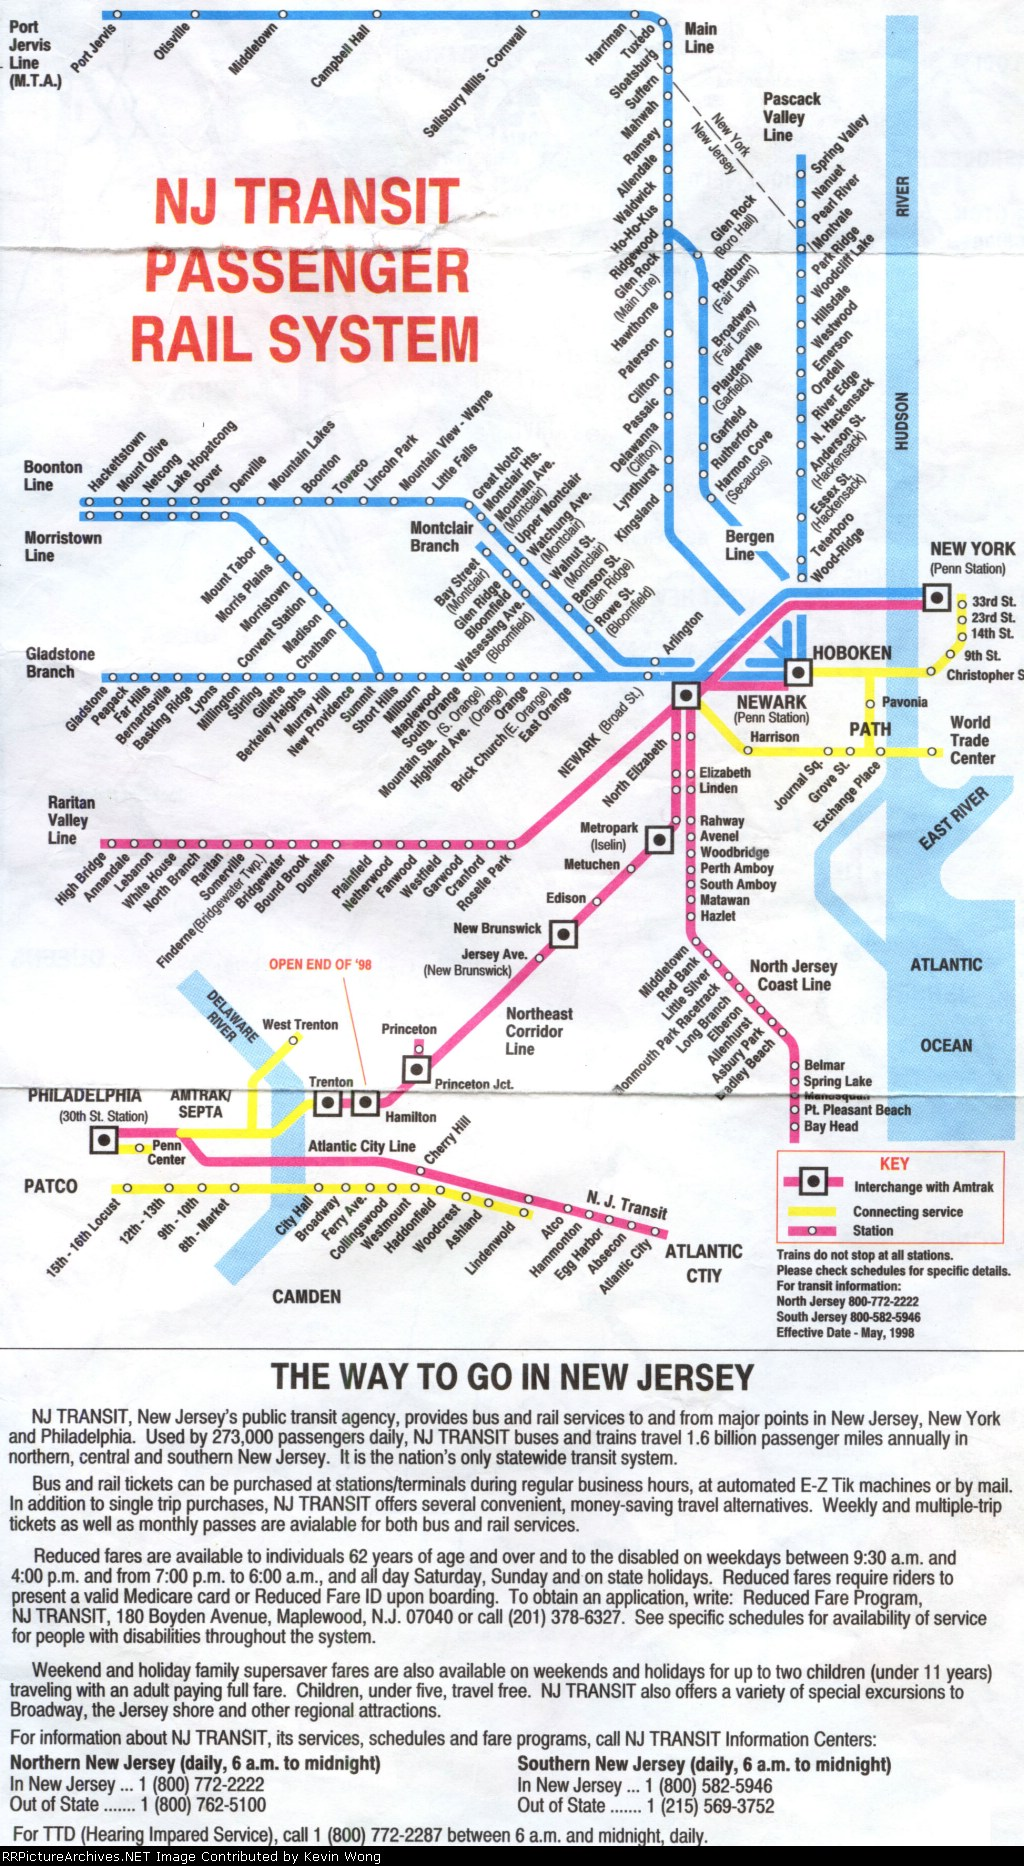 NJ Transit system map/guide, effective May 1998